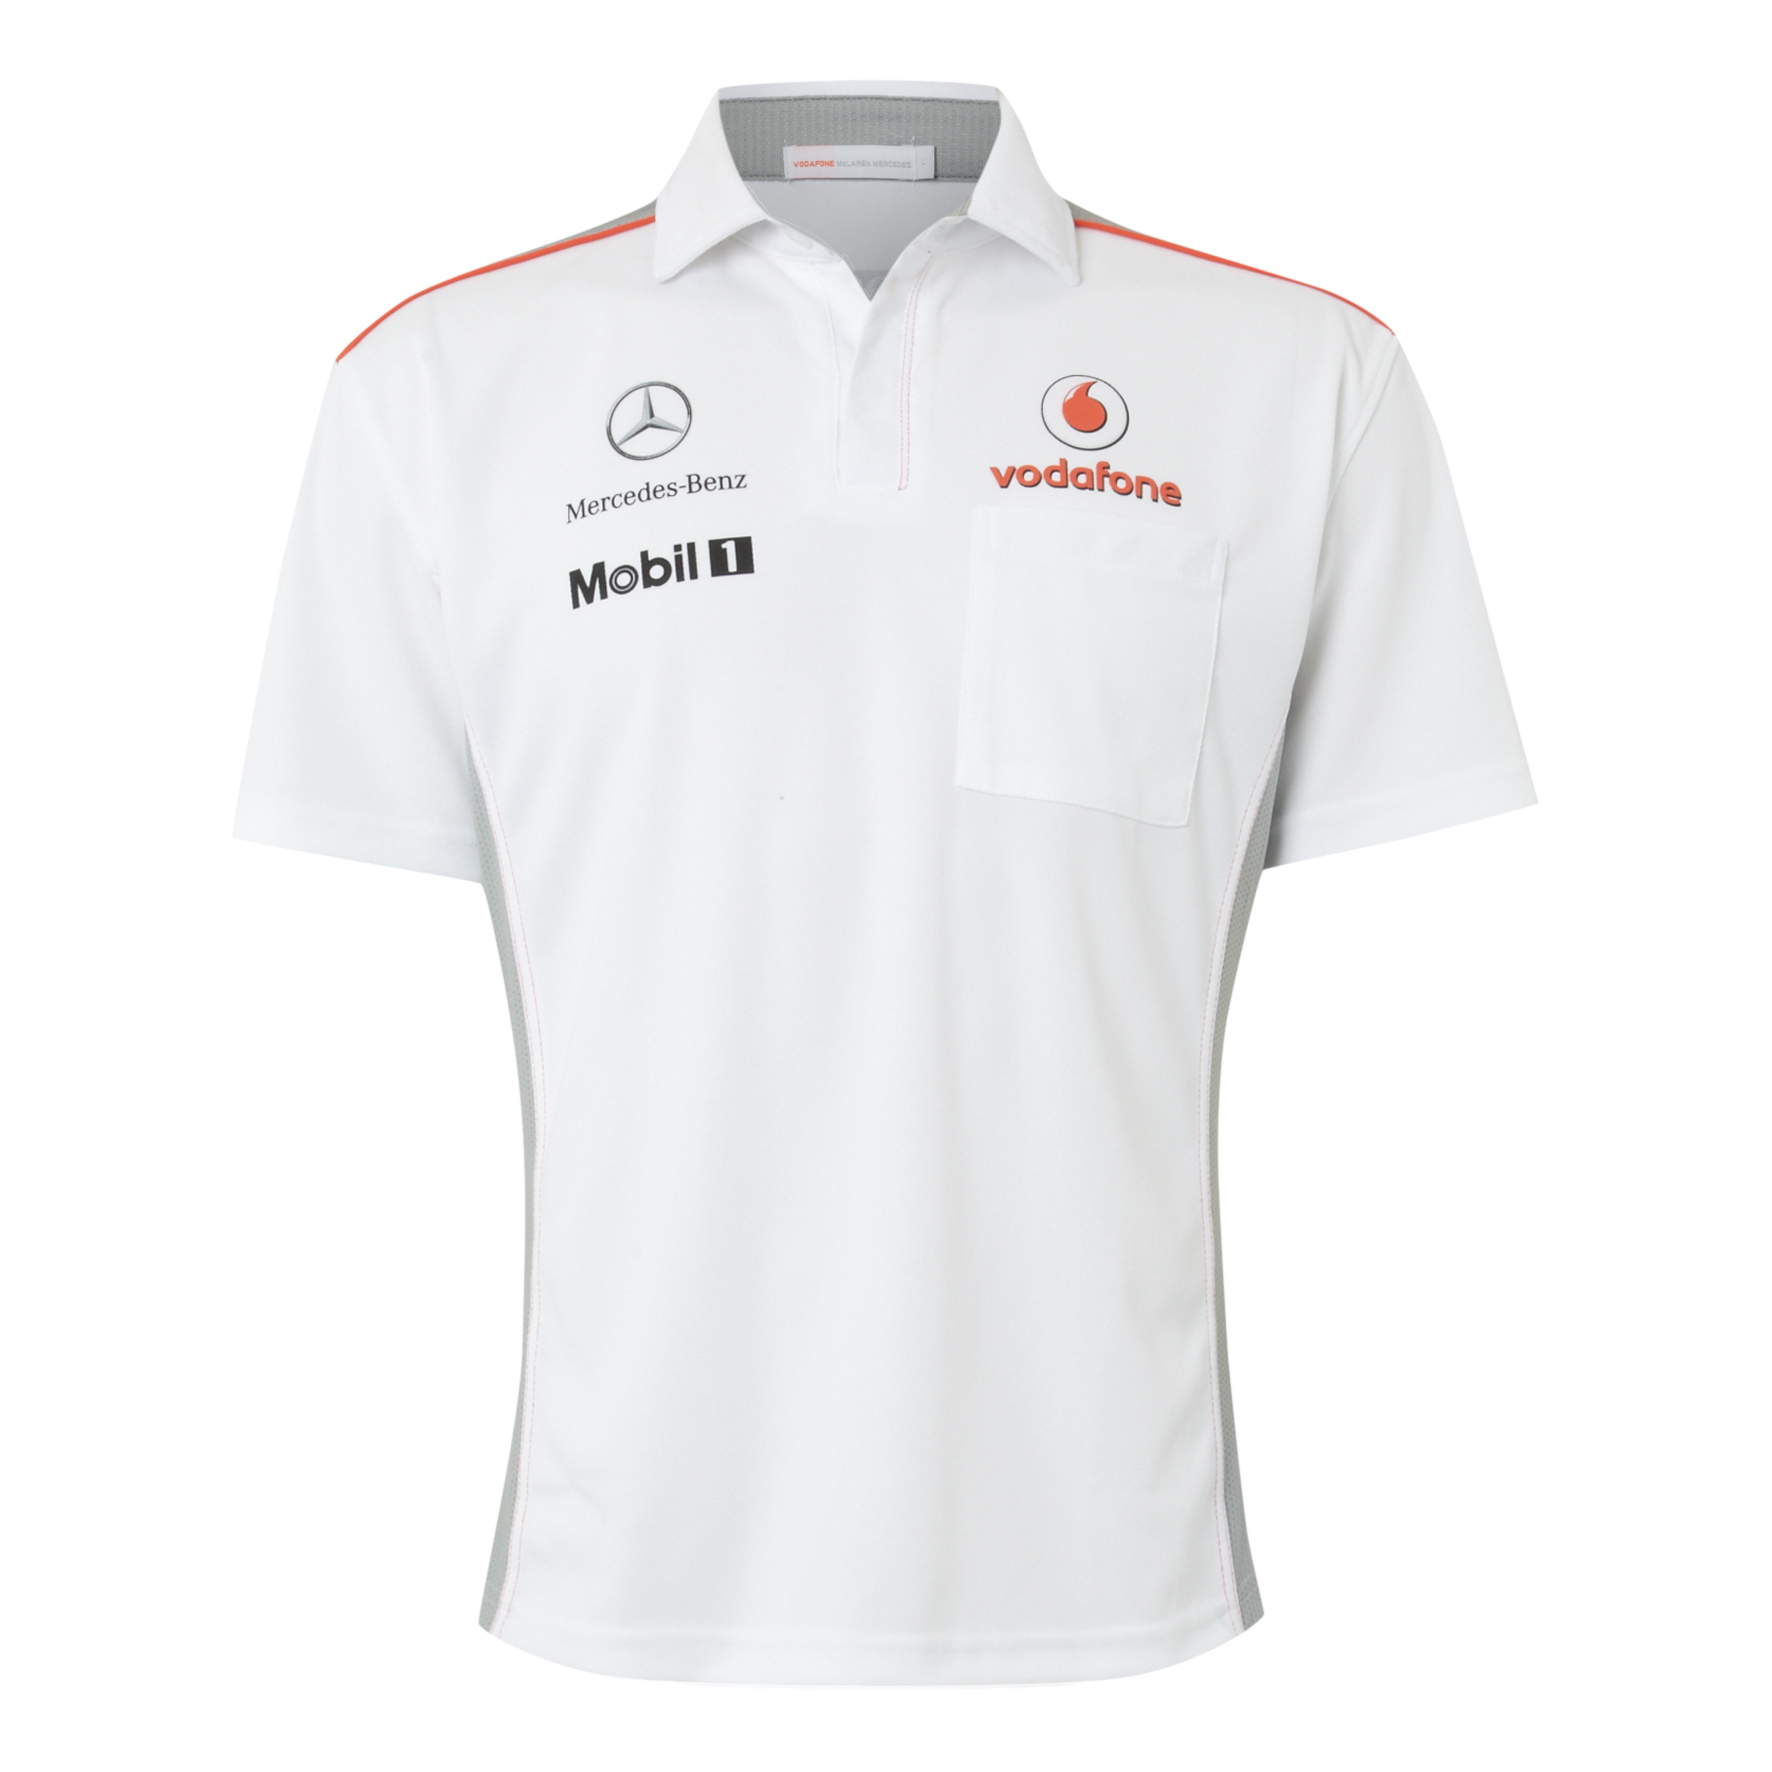 Vodafone McLaren Mercedes 2013 Team Polo Shirt